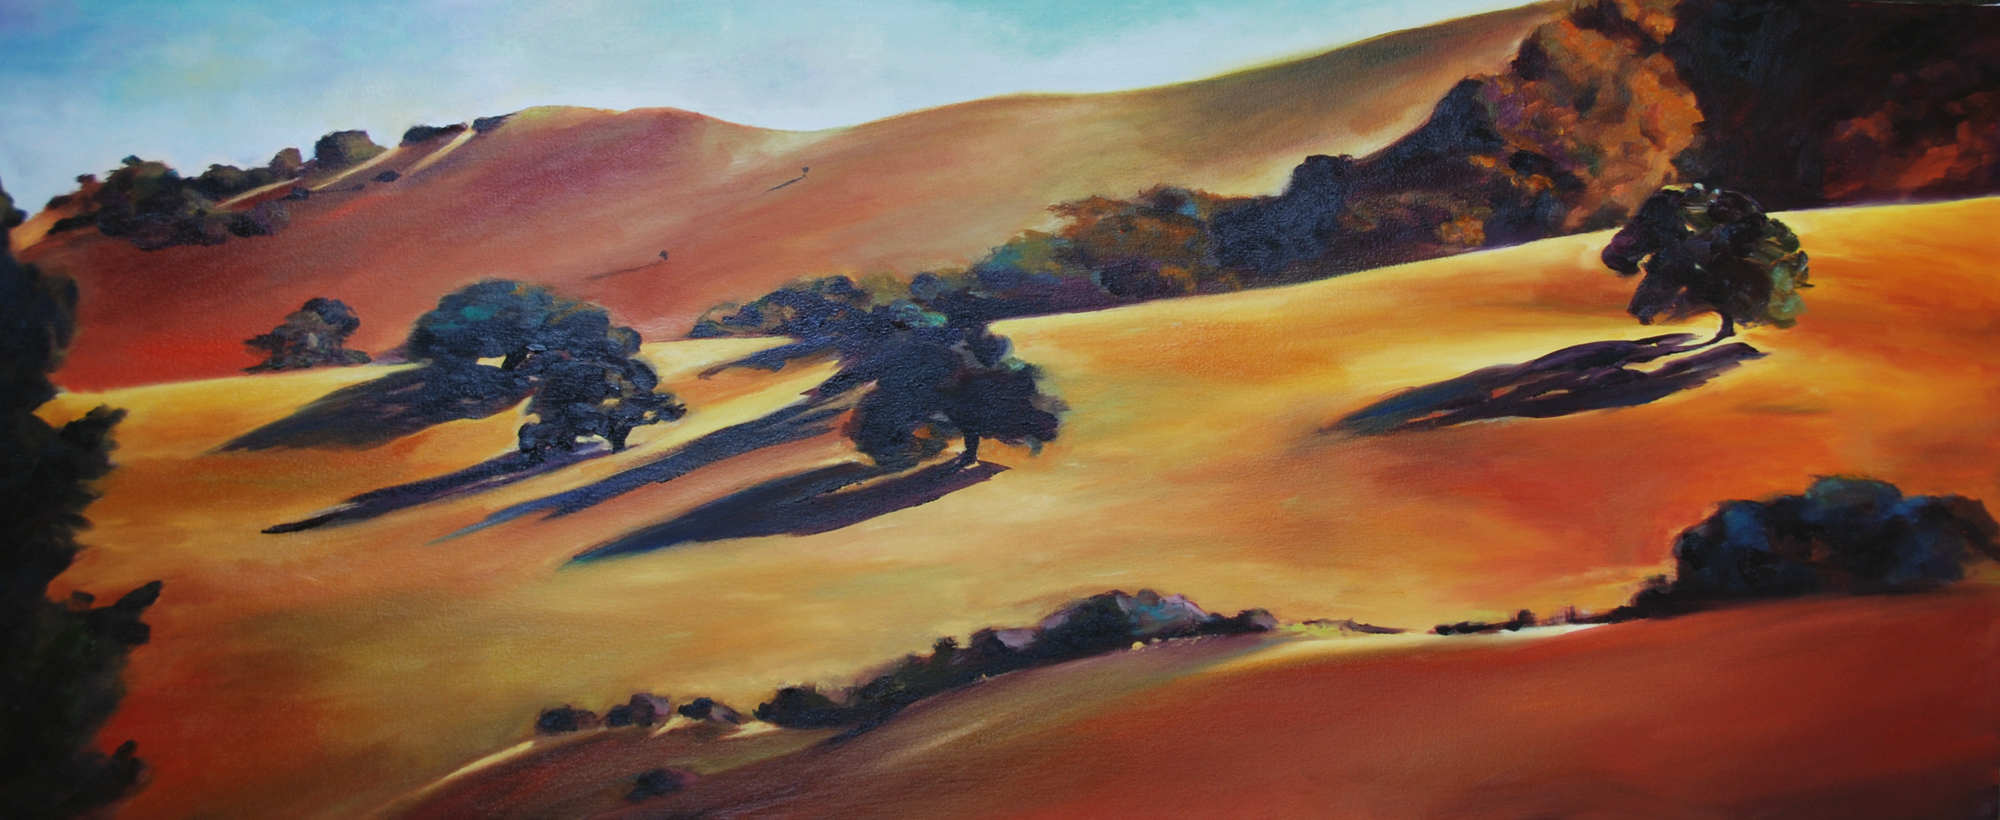 Late in July Santa Ynes Valley painting by Francene Christianson